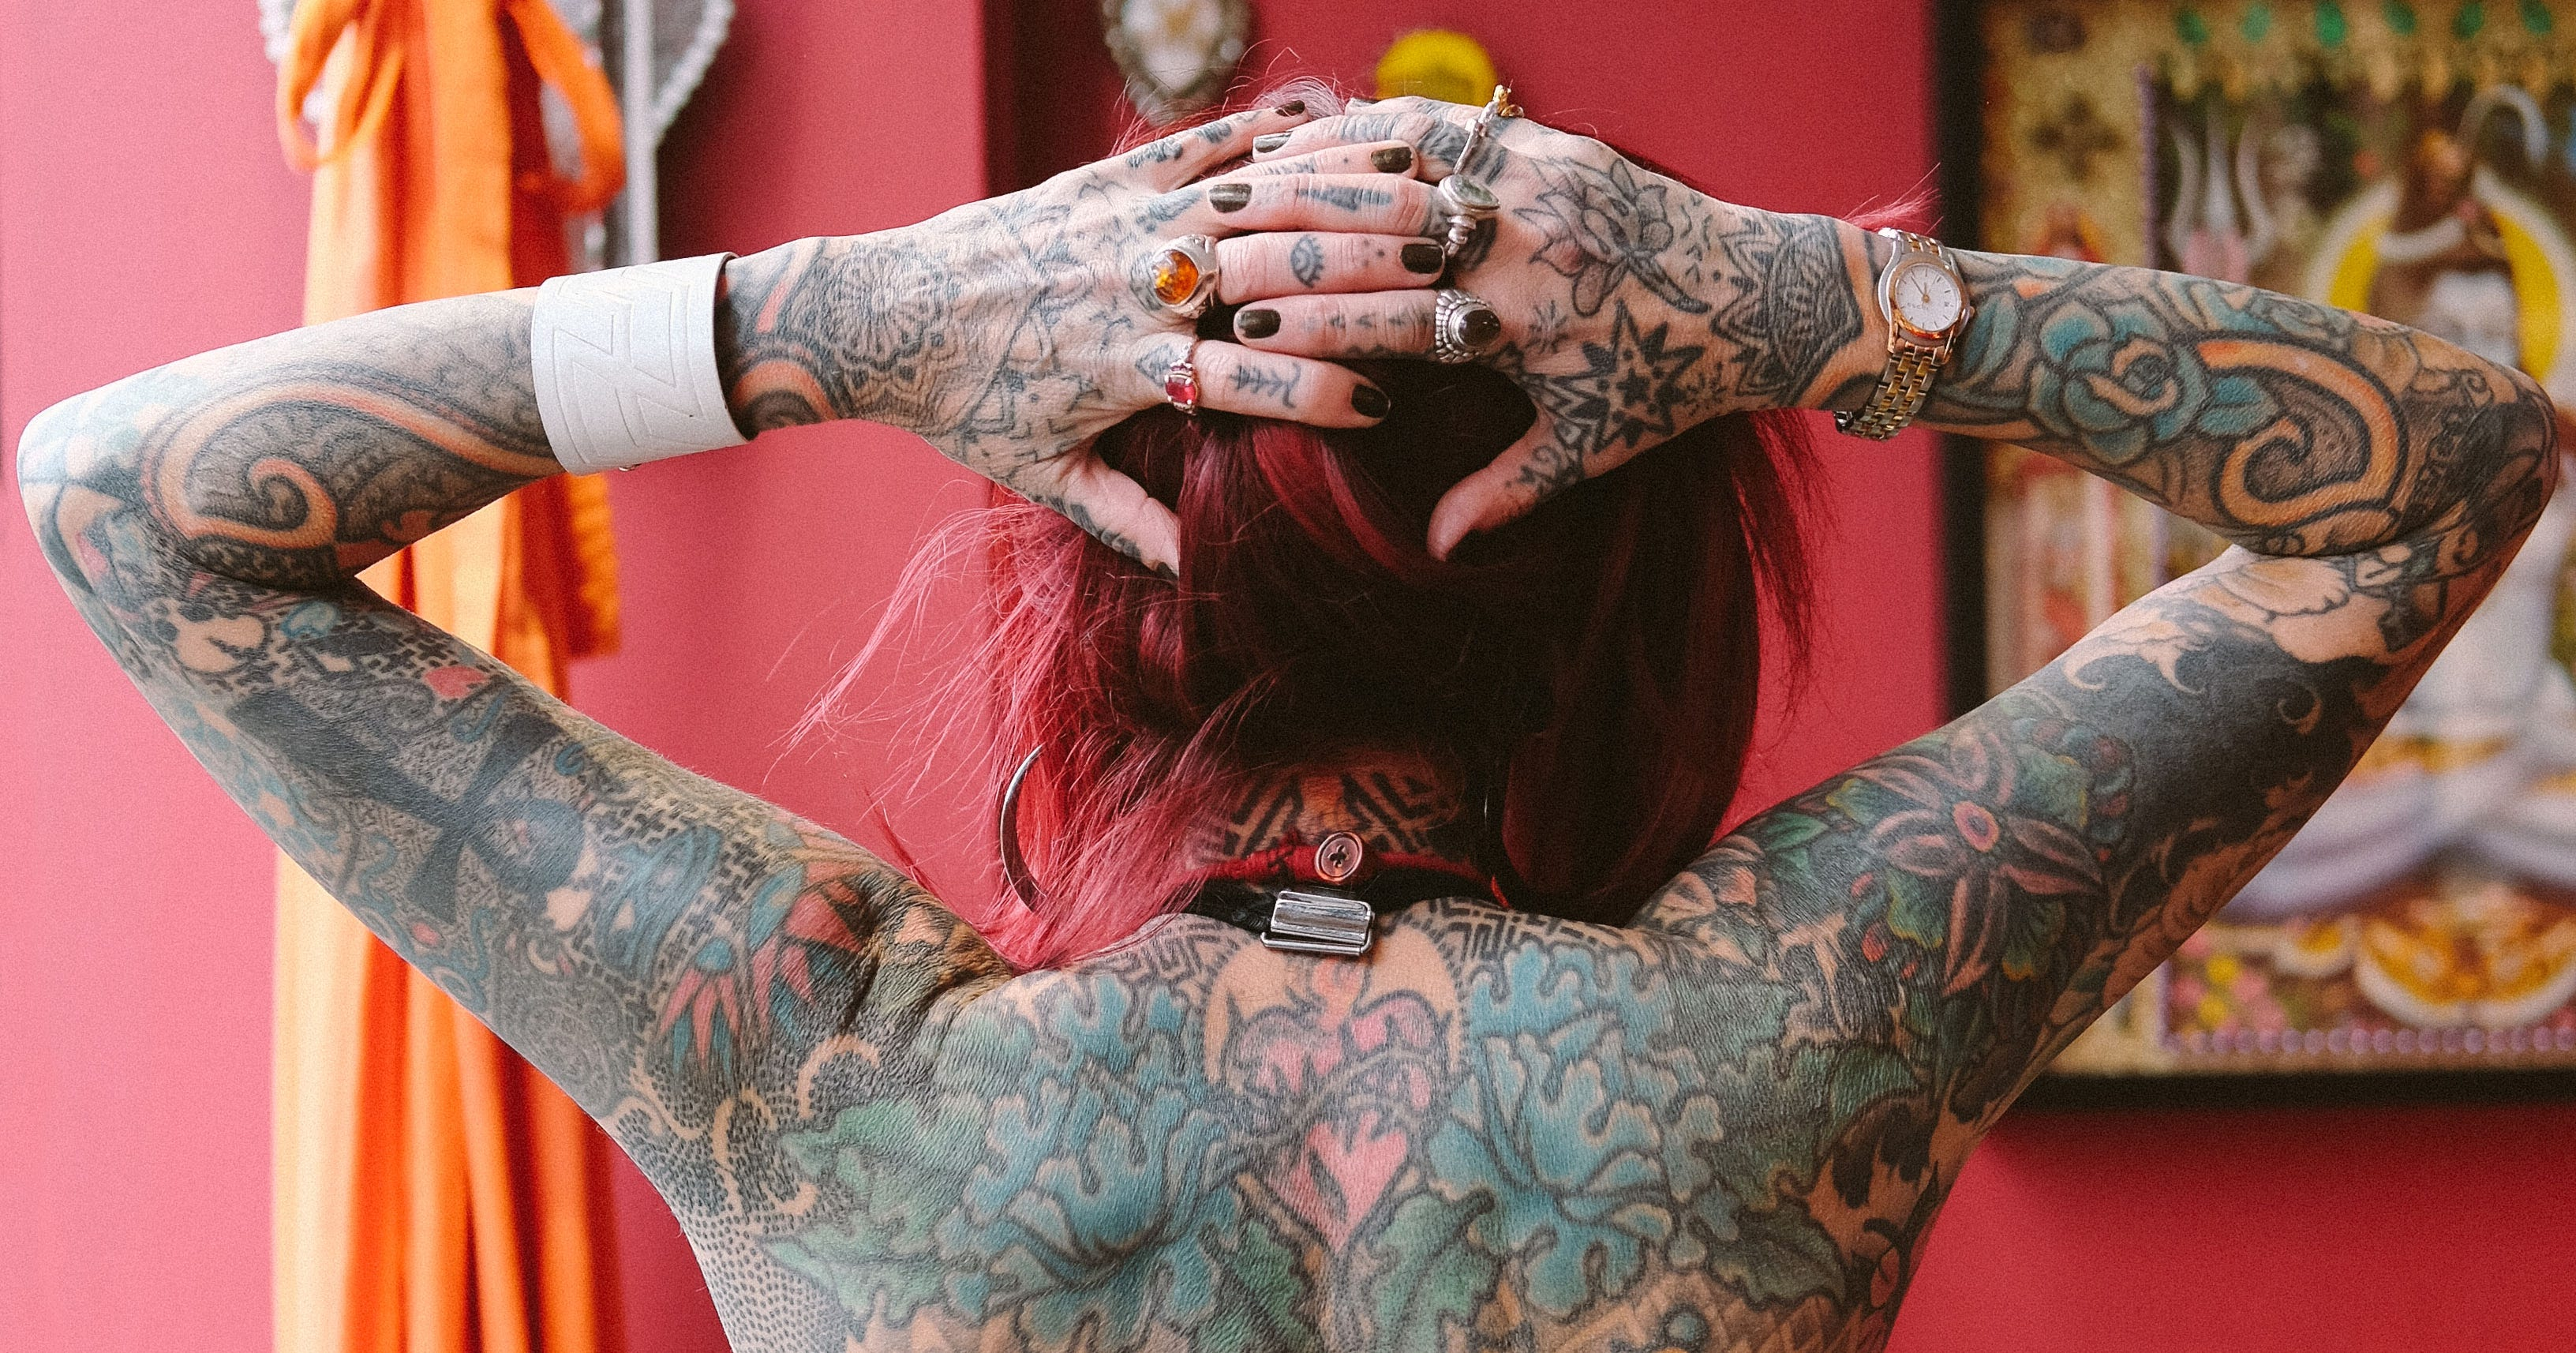 Tattoo 50: Women With Tattoos Over 50